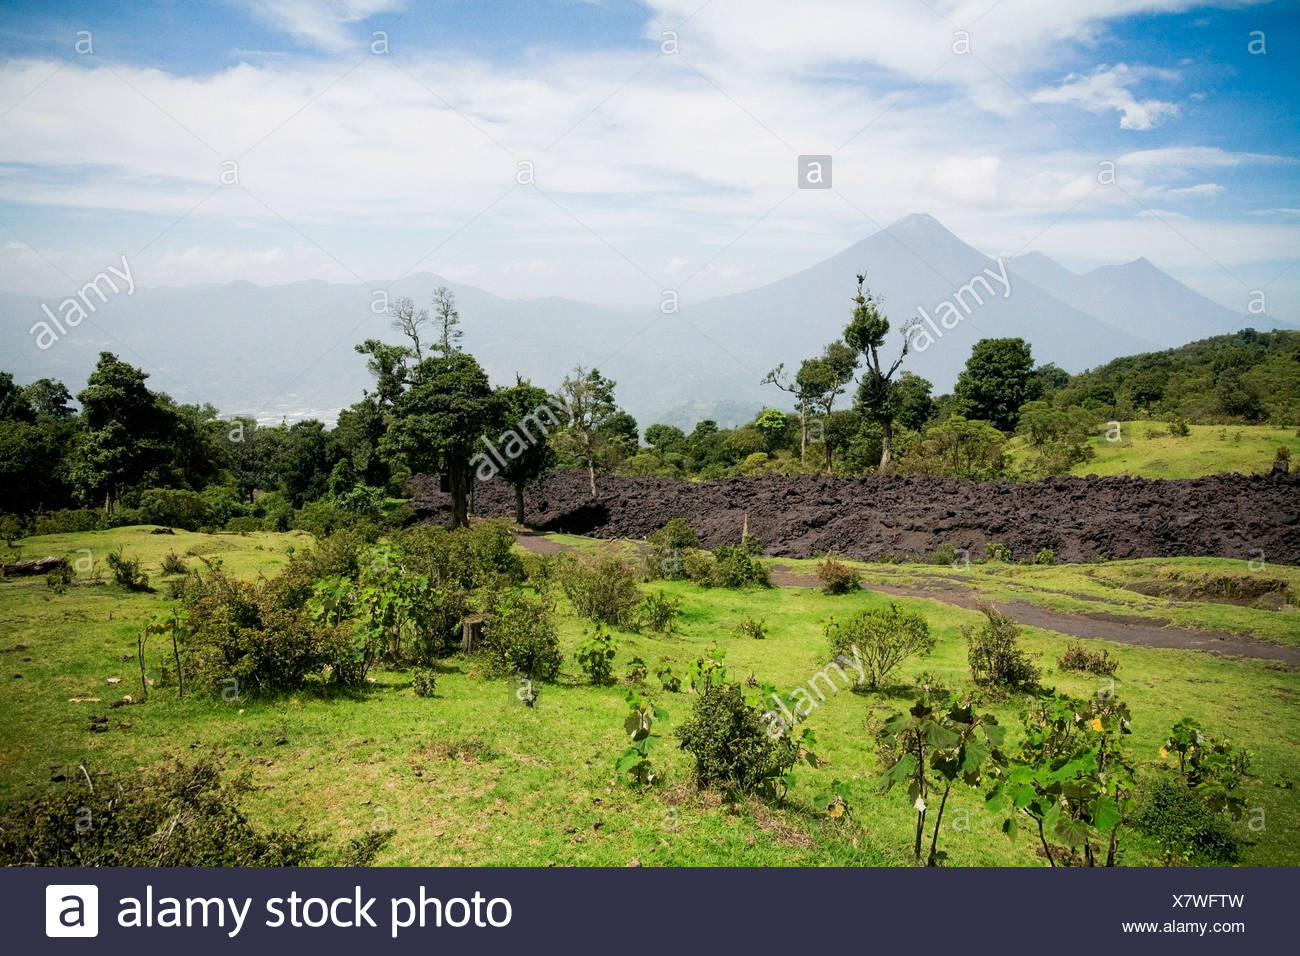 Preparation of new field; Antigua, Guatemala - Stock Image